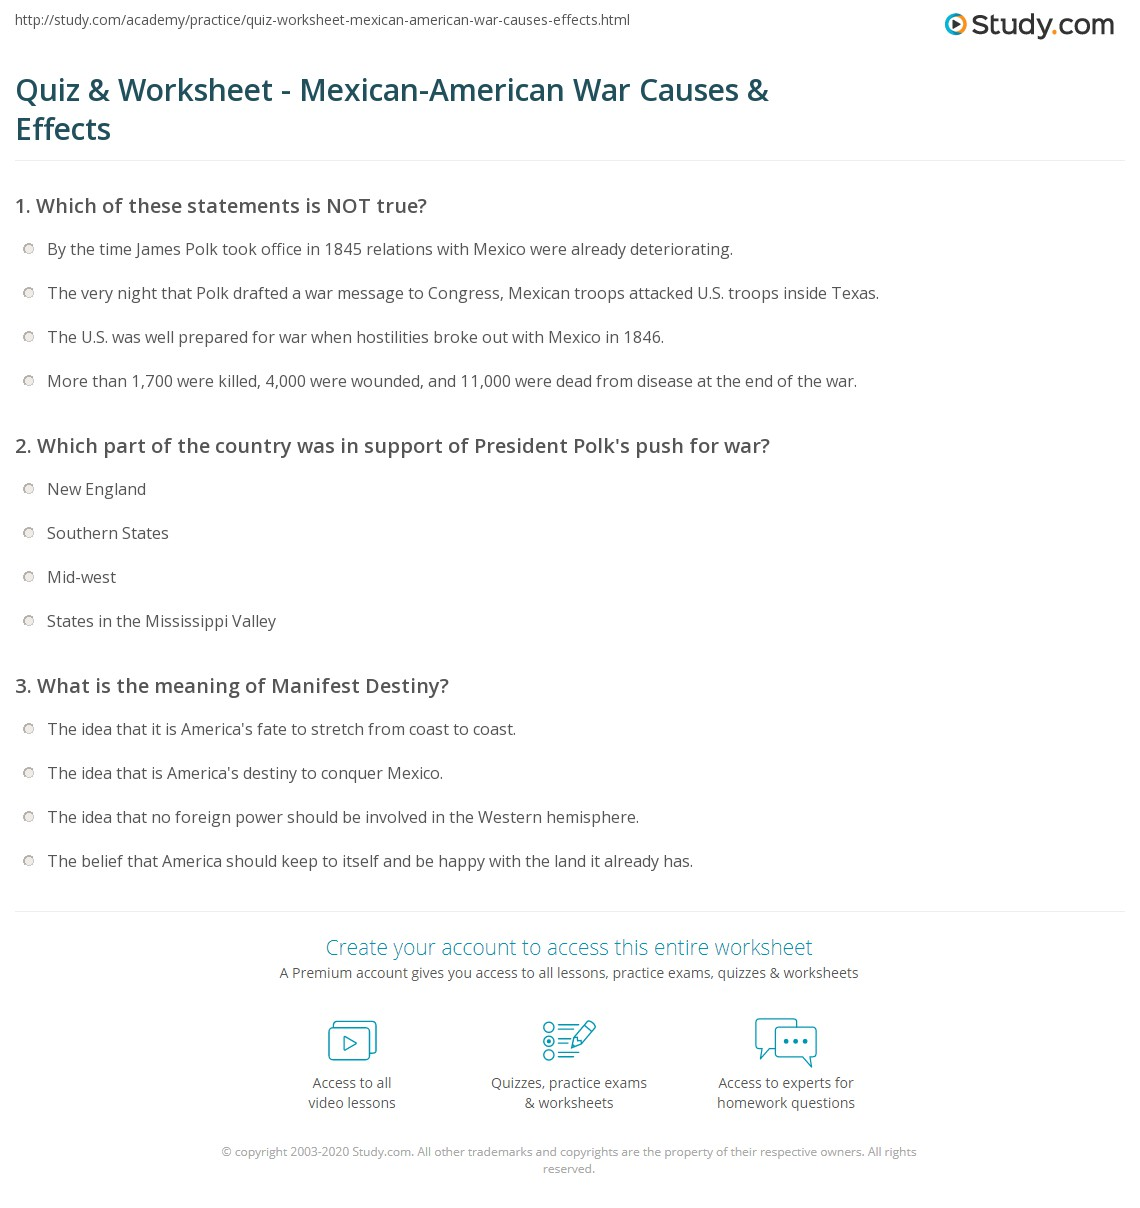 essay about mexican war essay mexican drug war images drug war cocaine murder smuggling gangs cartels drug lords